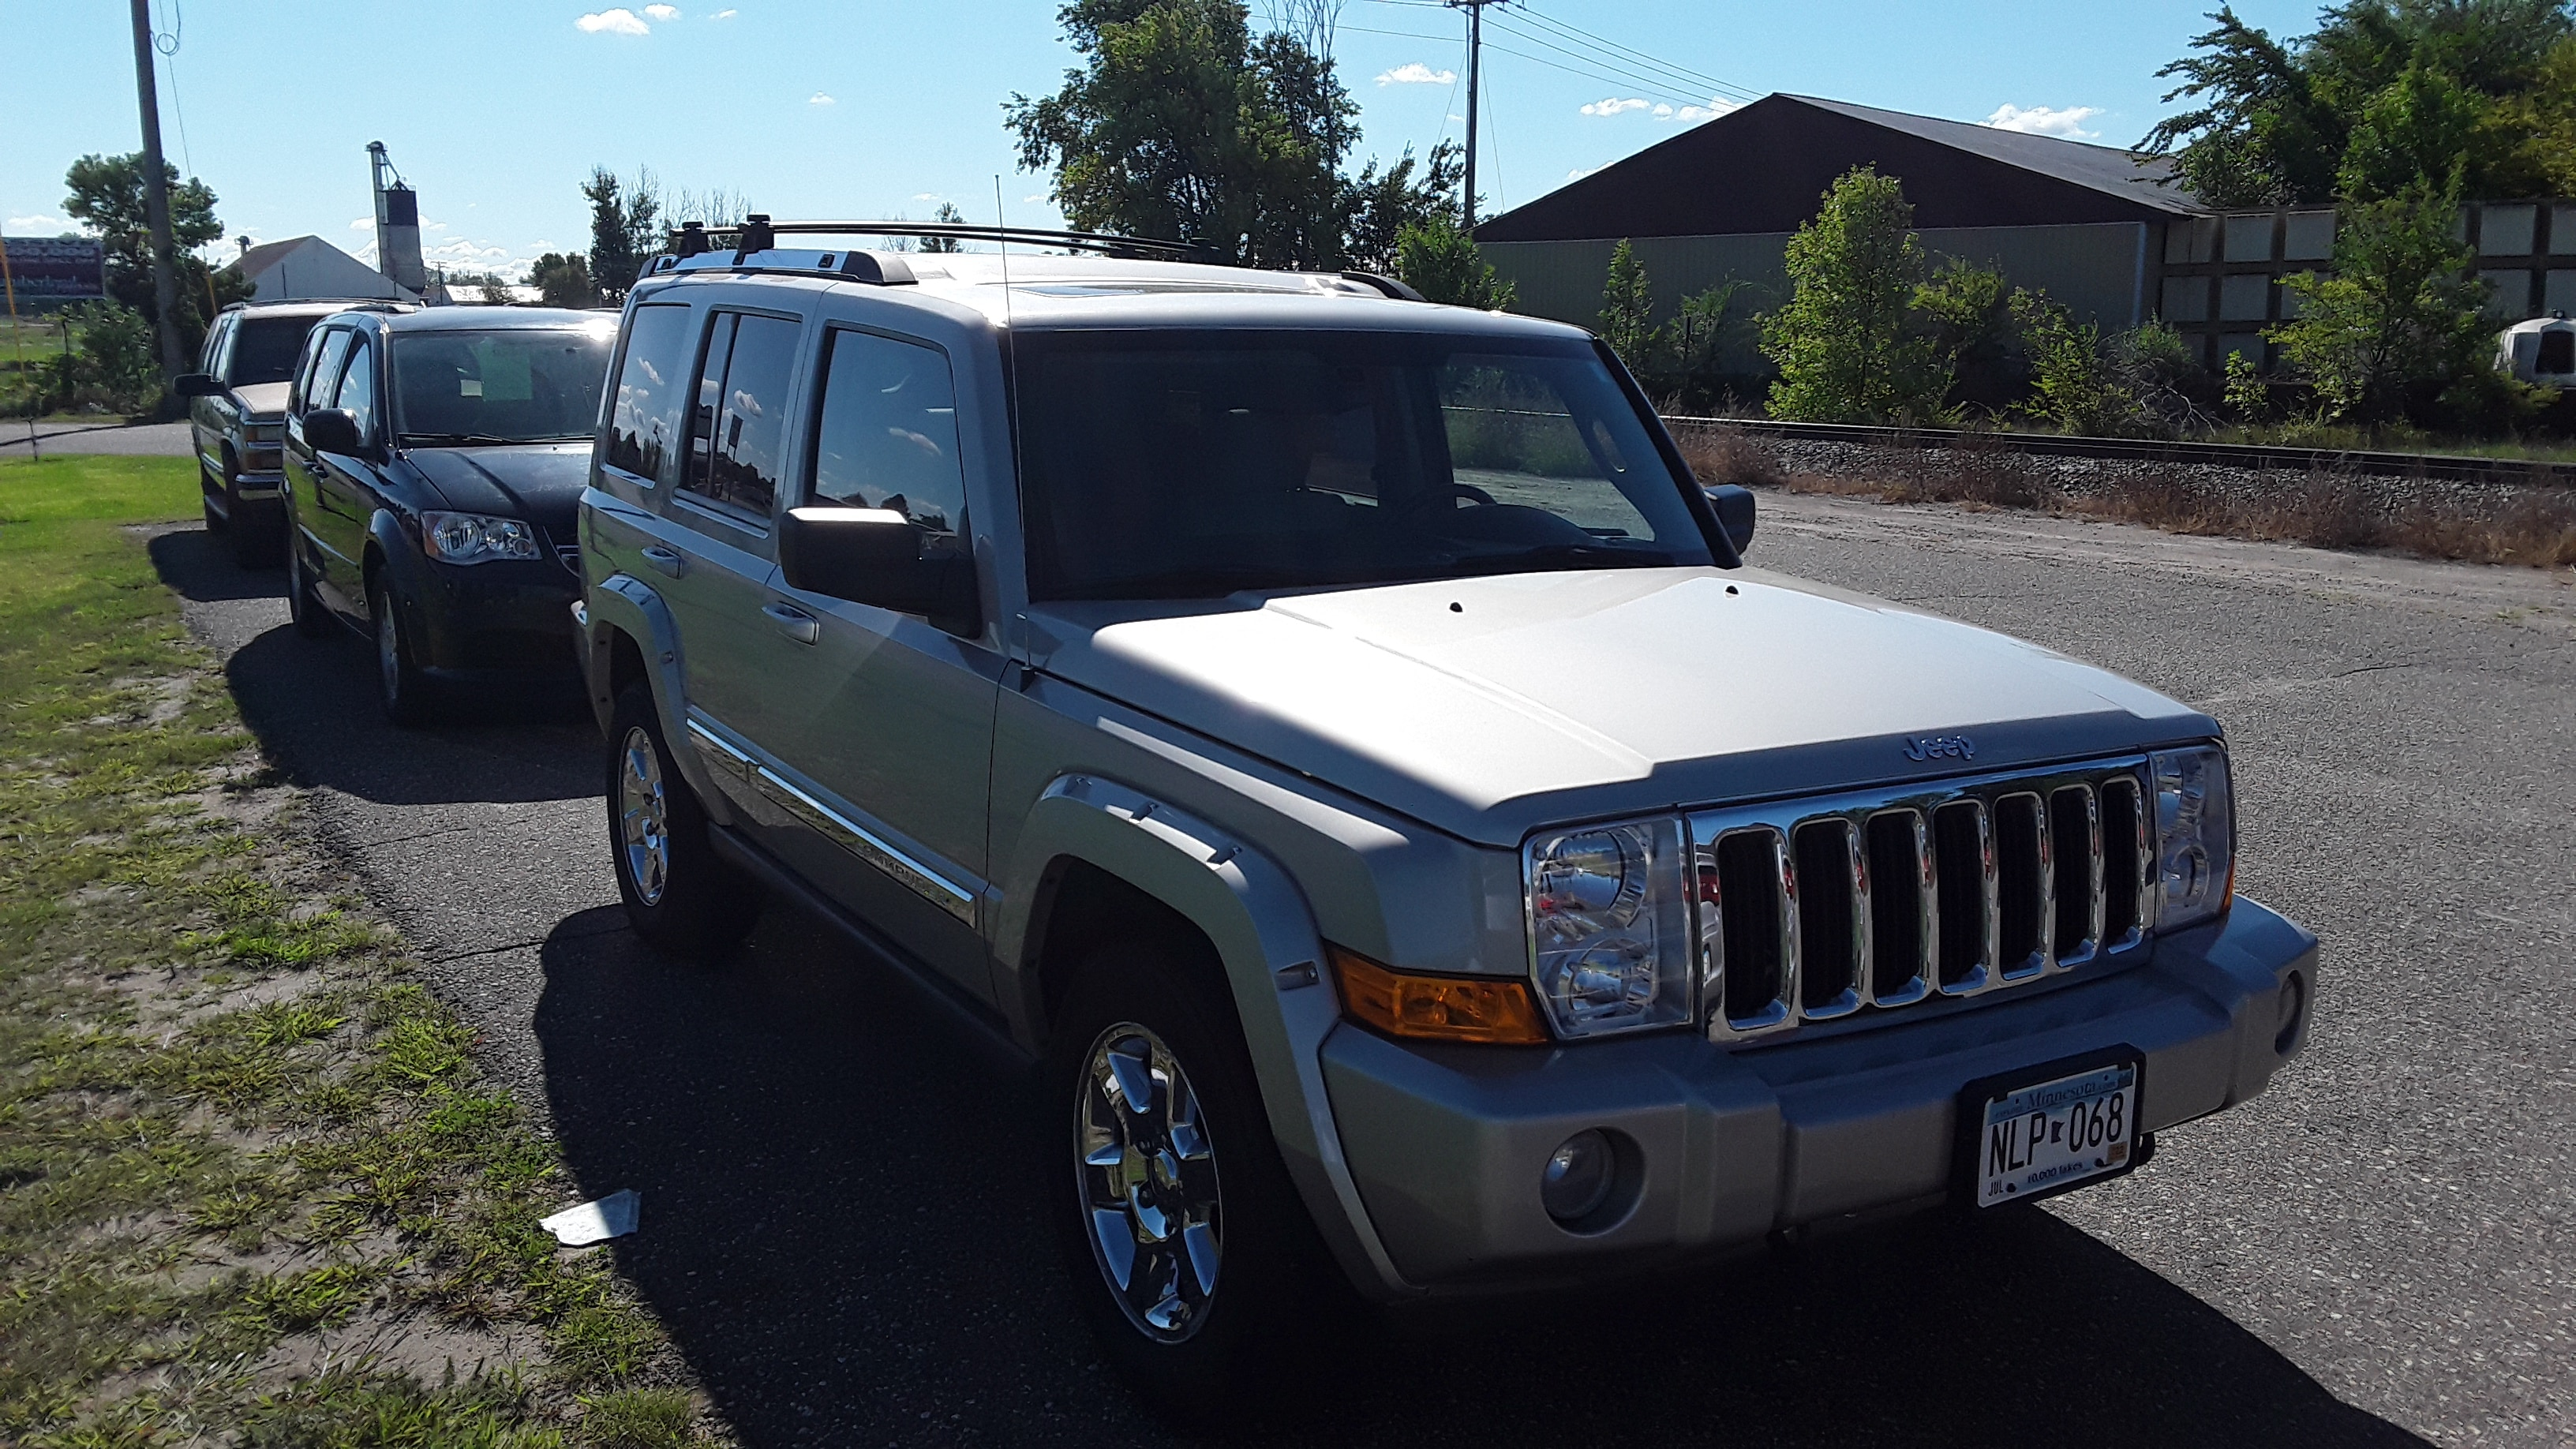 Used 2007 Jeep Commander Limited with VIN 1J8HG58P27C592533 for sale in Litchfield, Minnesota